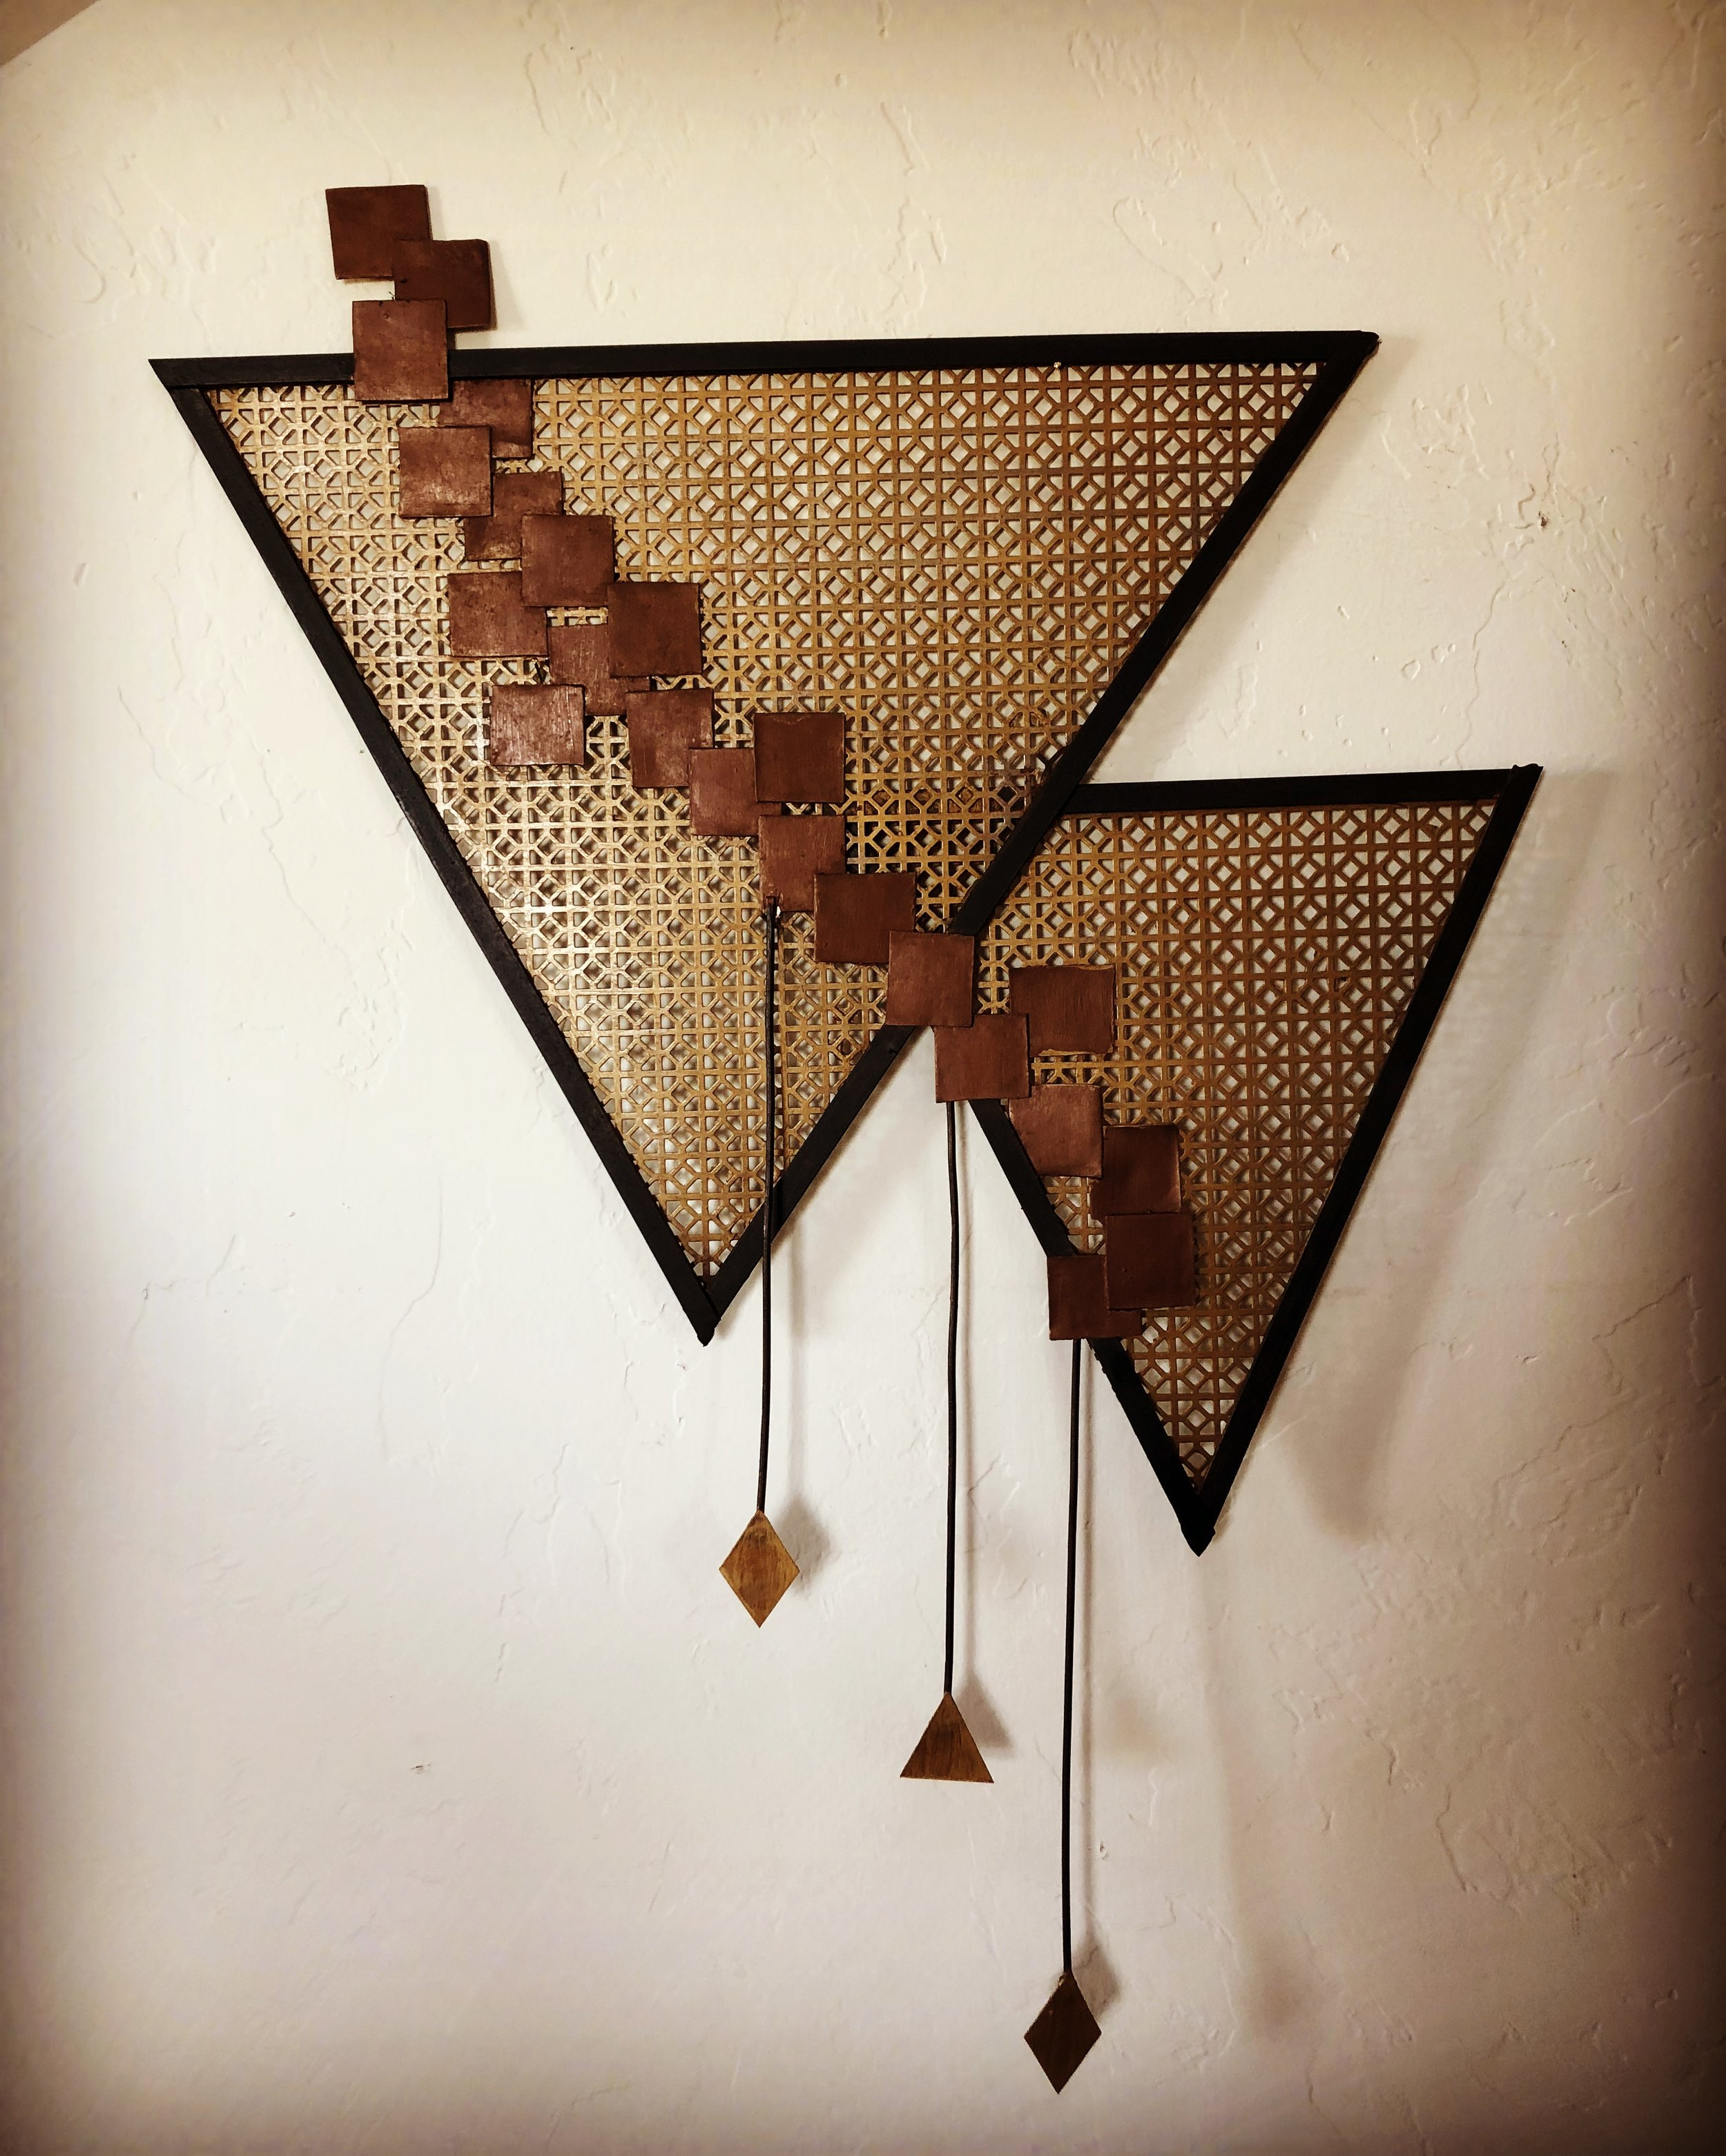 Two Triangles is 28 inches tall by 20 inches wide.